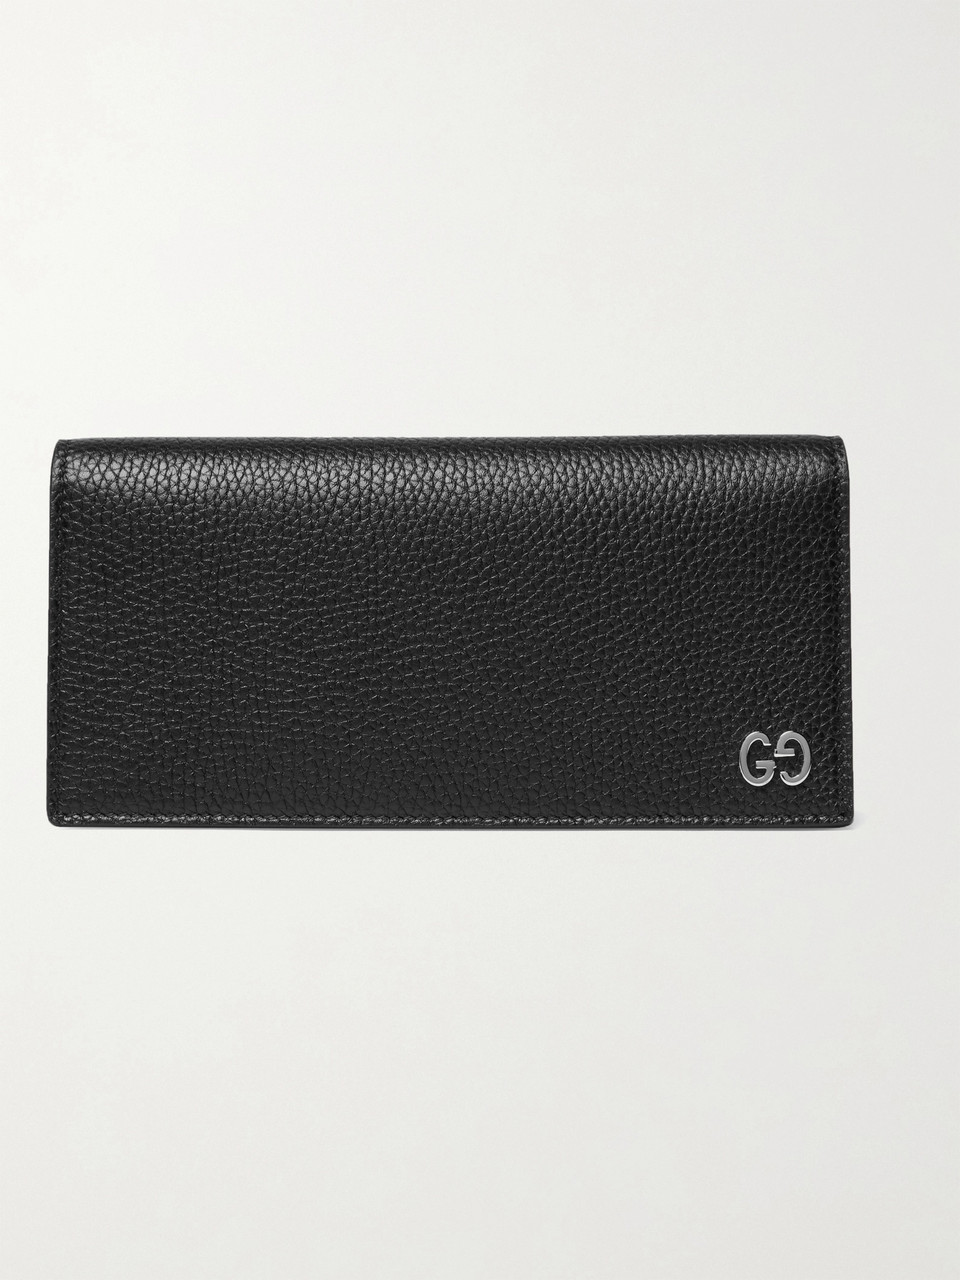 Gucci Dorian Full-Grain Leather Billfold Wallet